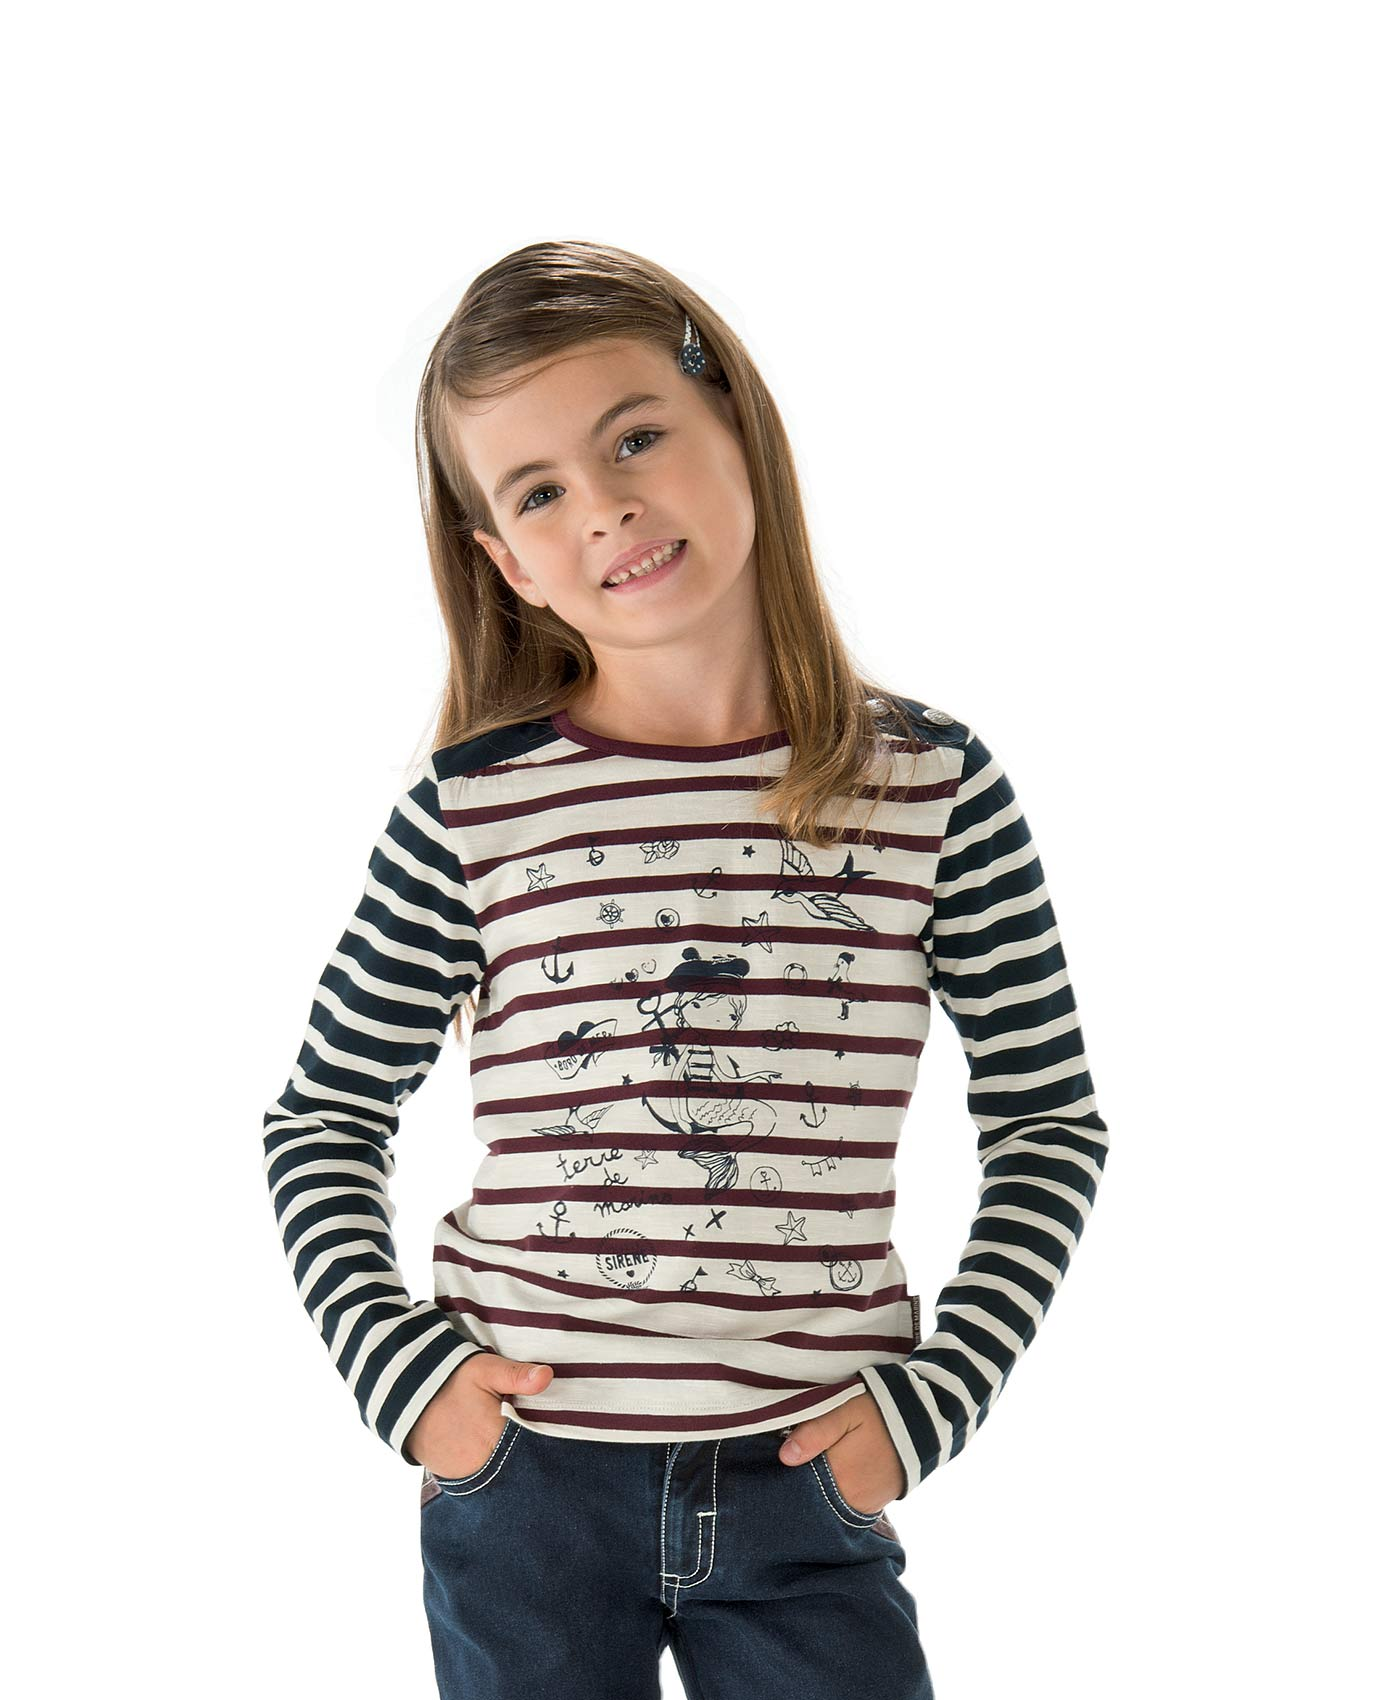 Tee-shirt fille rayé naturel - Mode marine Enfant fille